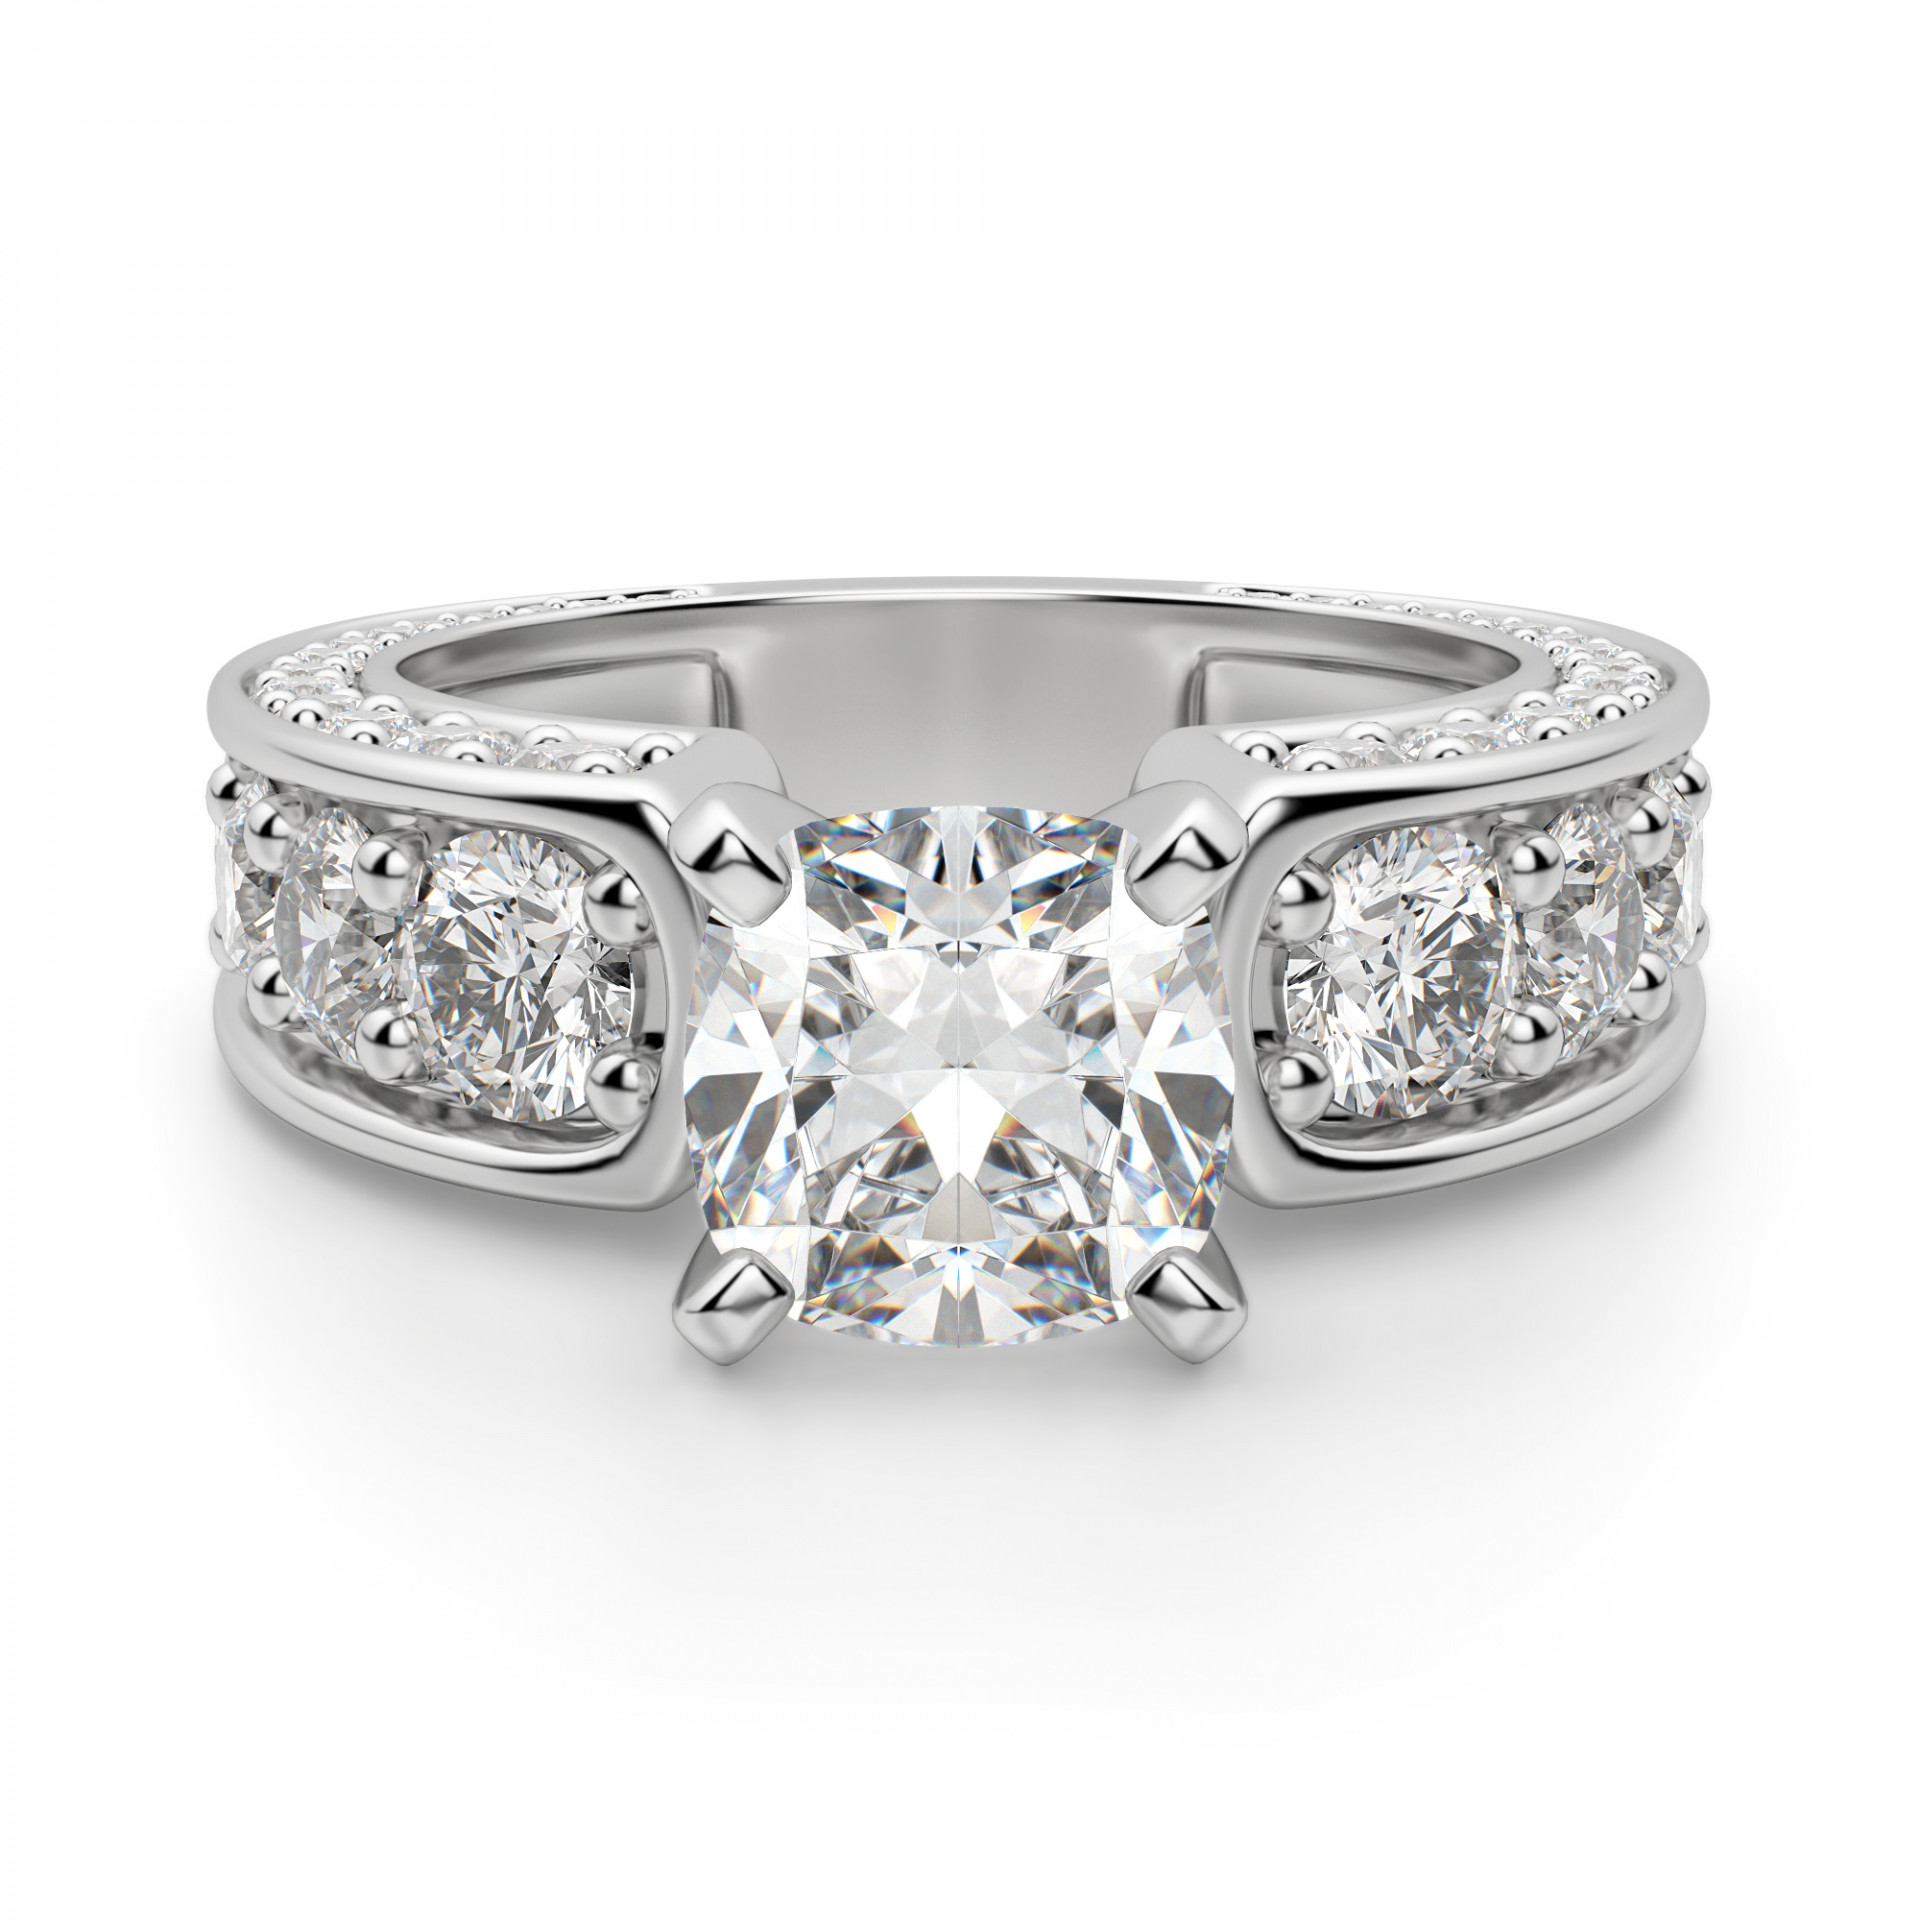 Hypnotique Cushion Cut Engagement Ring